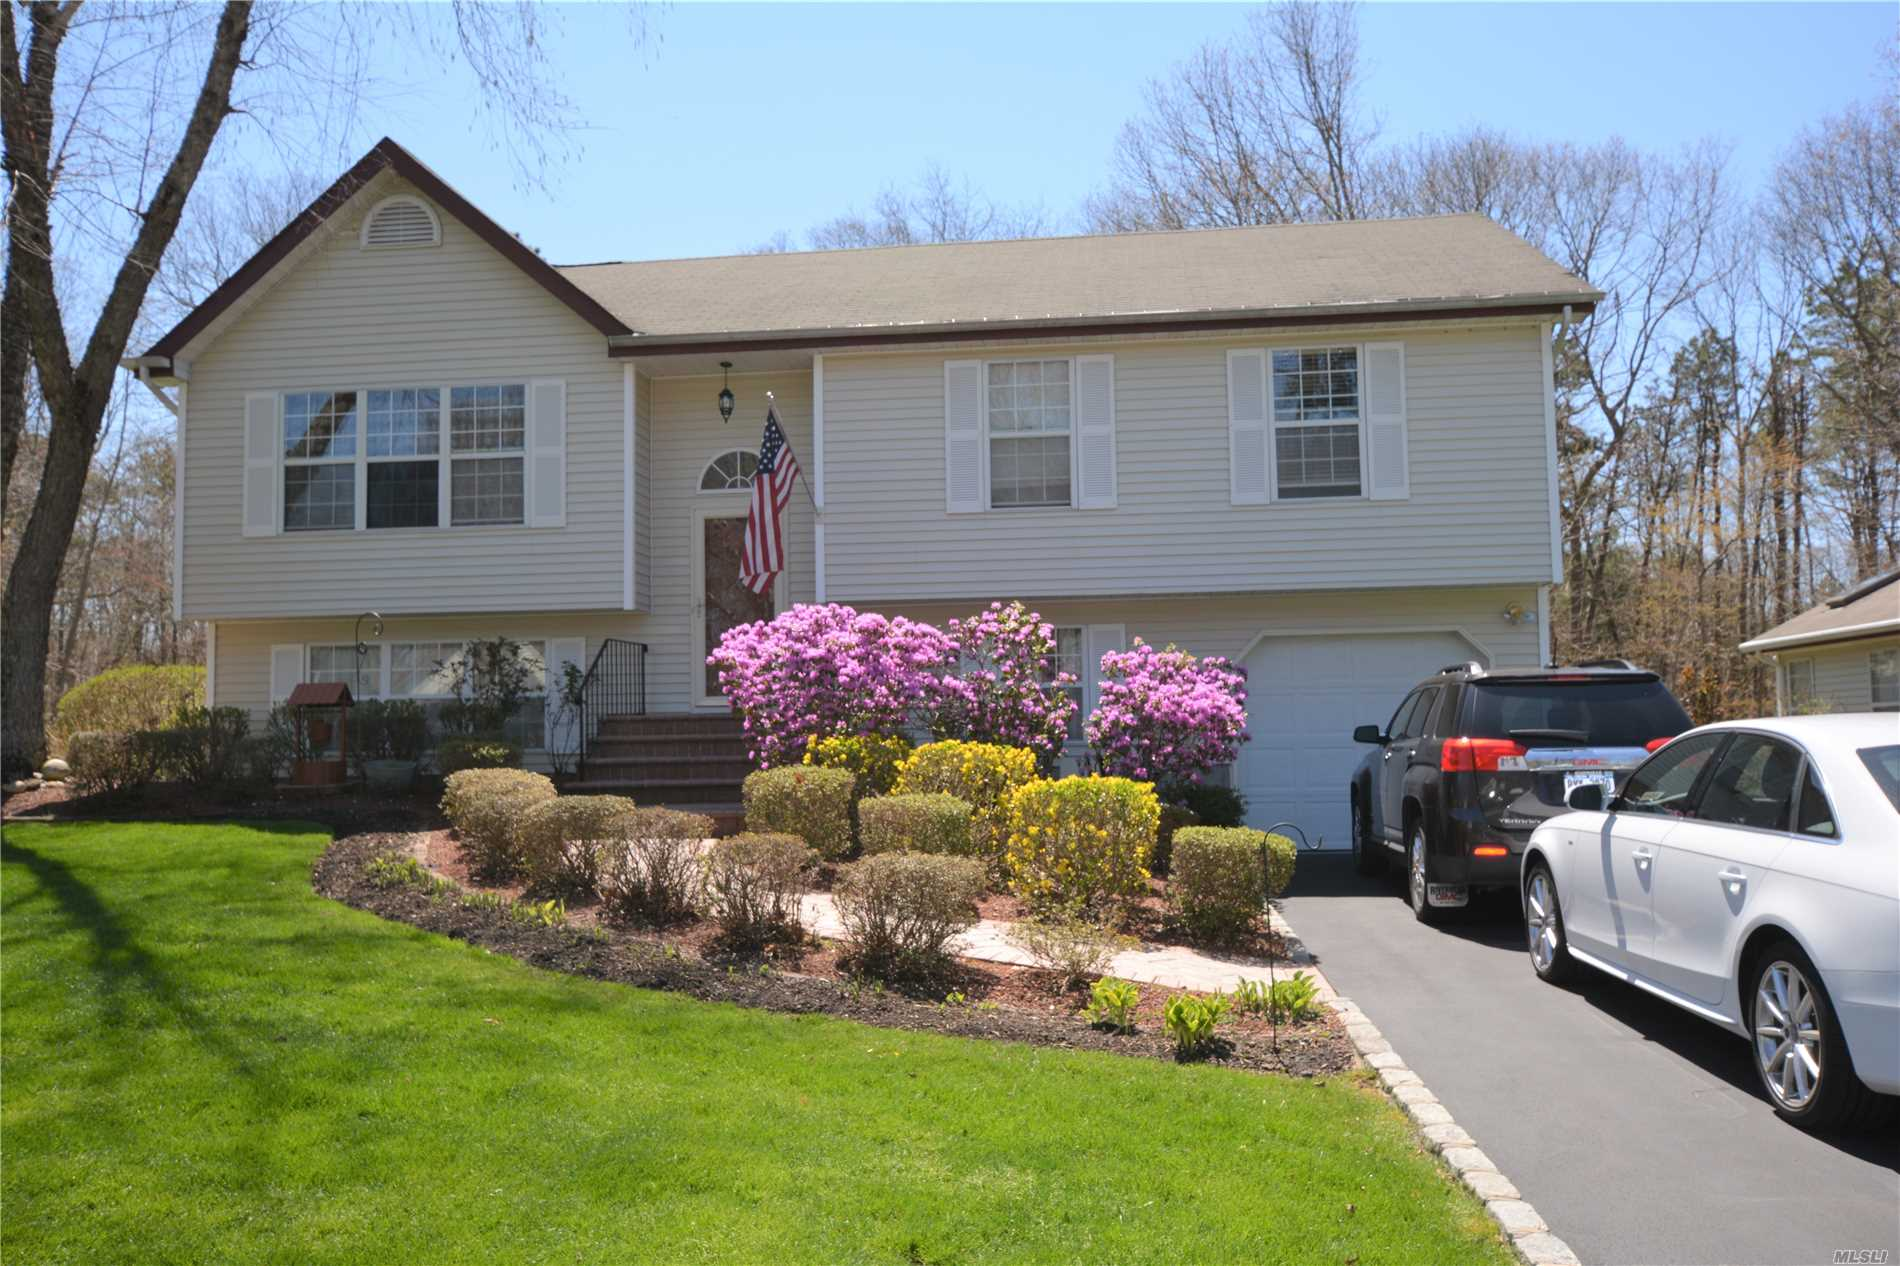 Back On The Market!  Motivated Seller! Diamond Home In Cul De Sac. Just Move In. 3Br With Office That Can Be Turned Into A 4th Bedroom. Eik, Two Full Baths, Lr, Dr And Large Den/Family Rm. Large Outdoor Deck For Entertaining. View Of Golf Course. Gated Community, Tennis Court, Basketball Court, Pool, And Recreation Area. You Will Fall In Love With This Home And The Grounds. Maintenance $340.00- Includes All Landscaping, Snow Removal, Street Maintenance, Garbage, And Water.